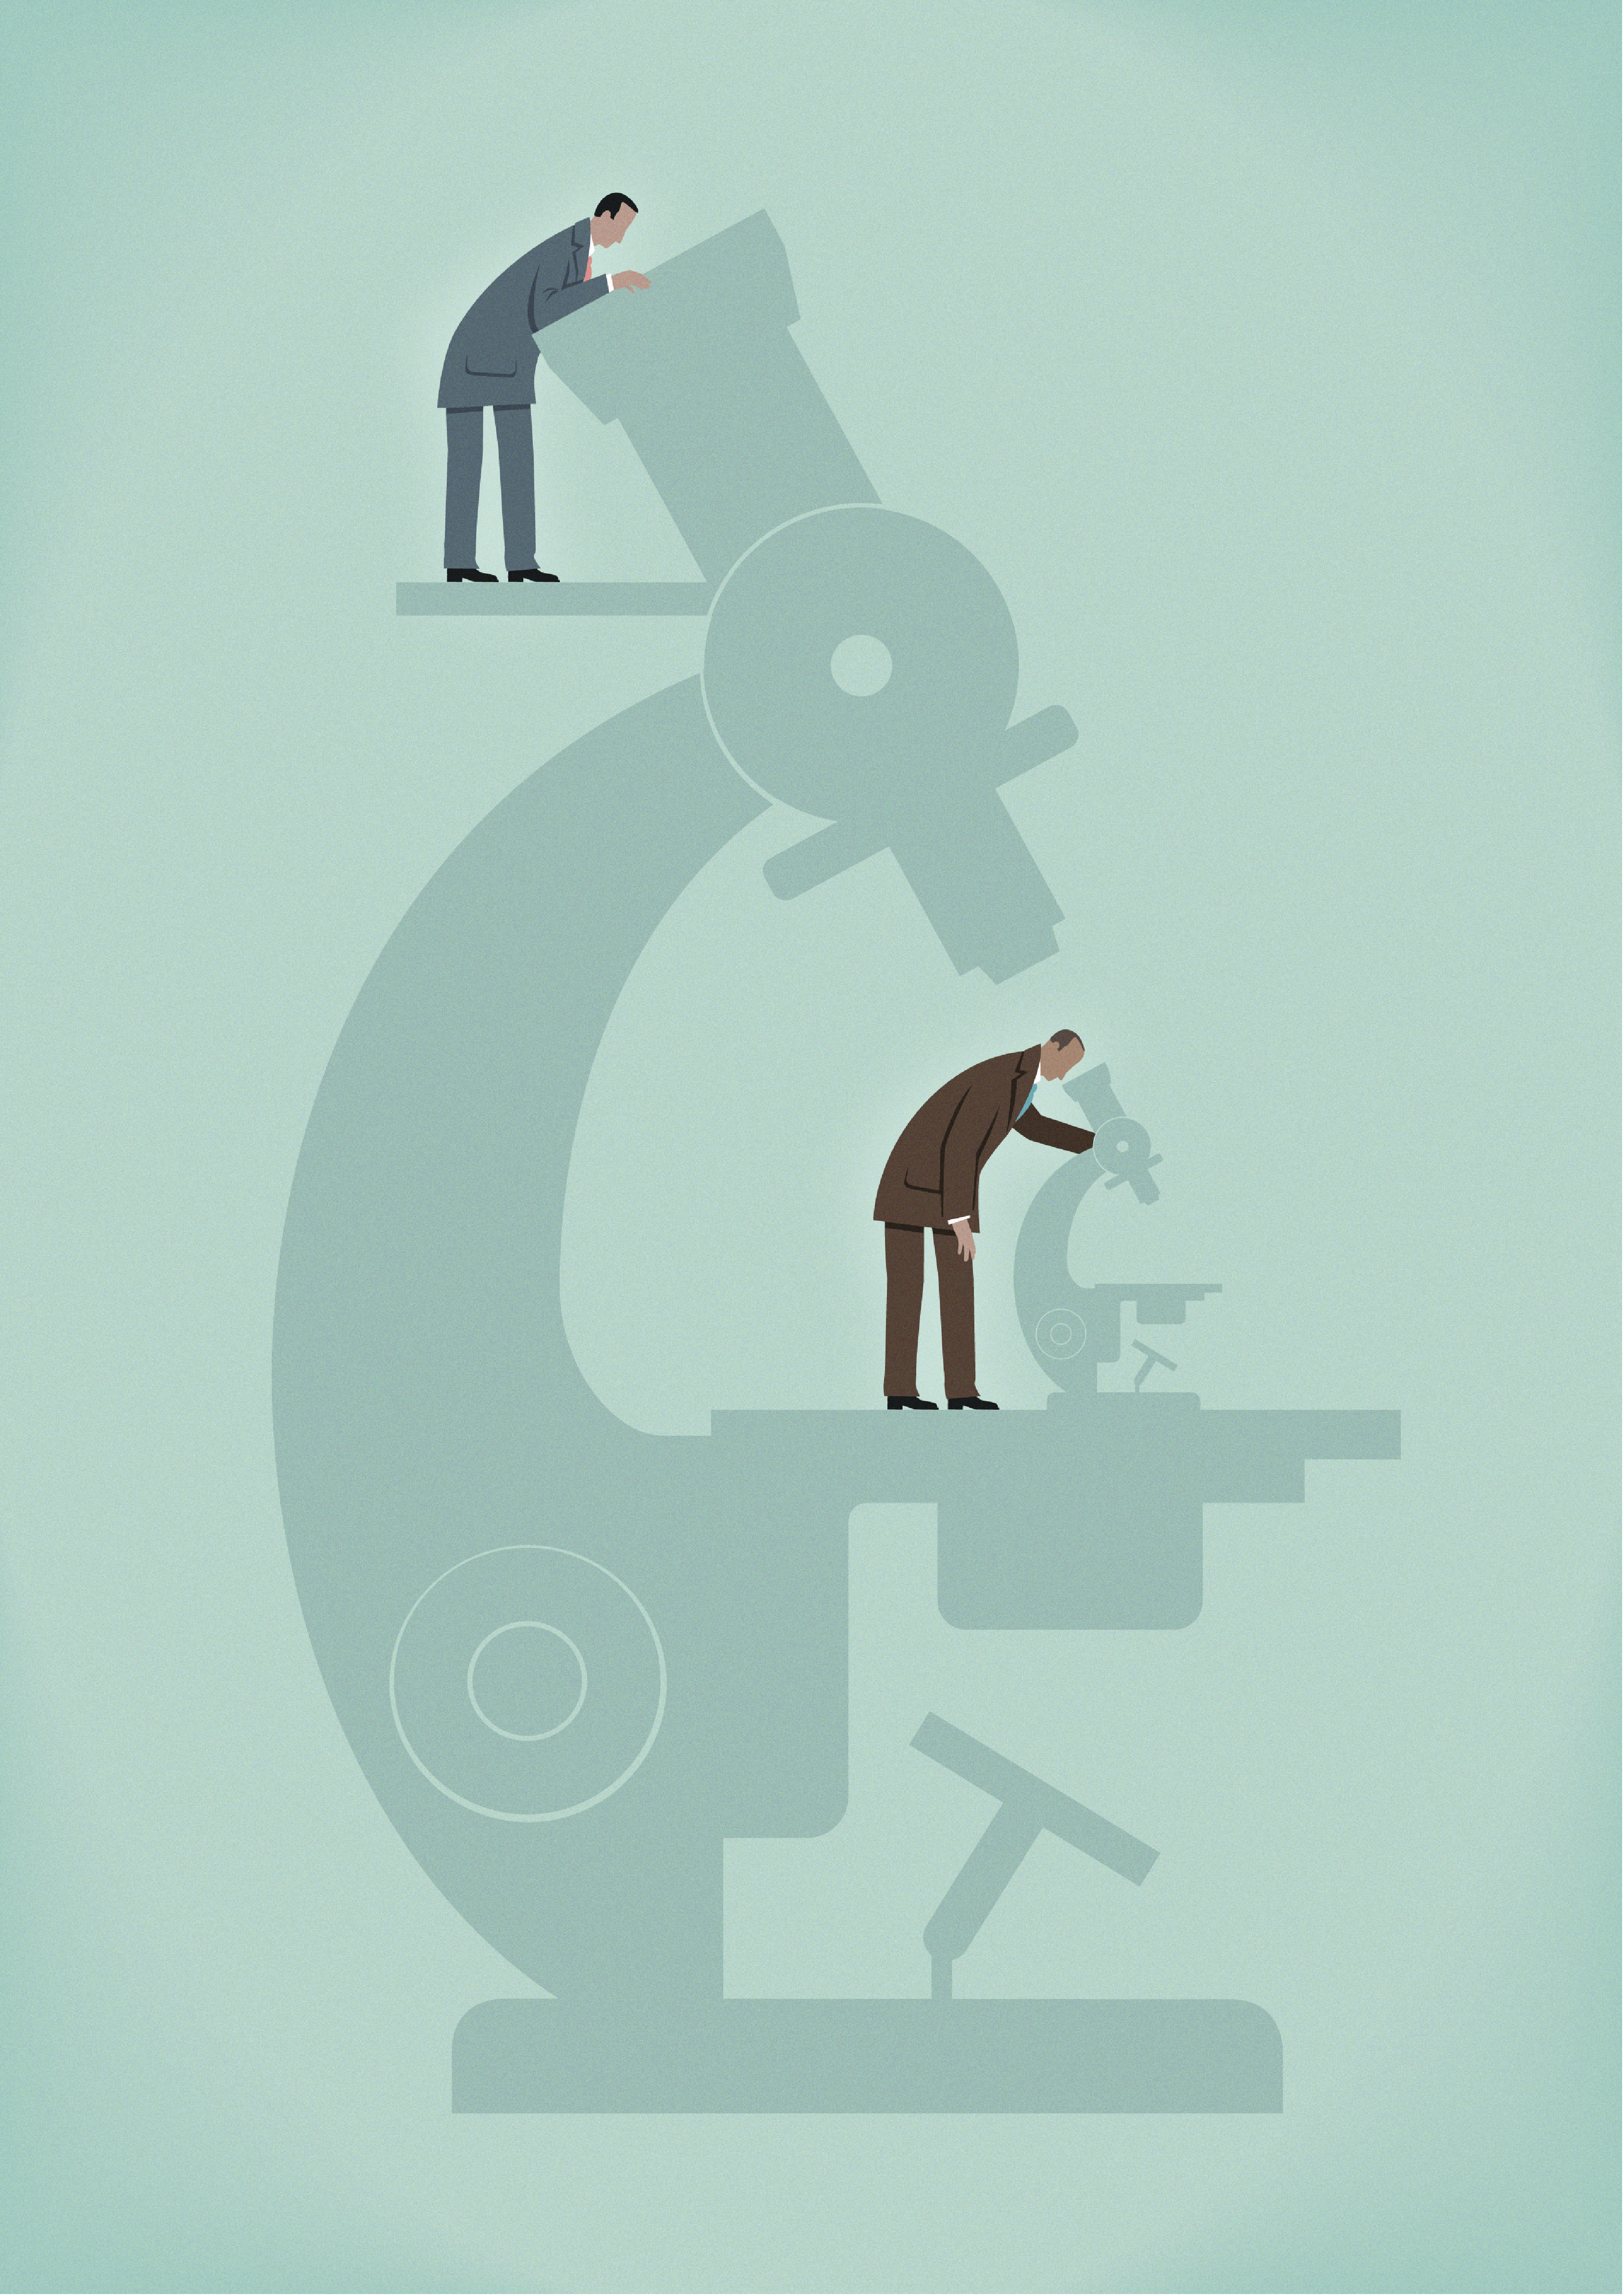 Businessman with large microscope watching businessman using microscope